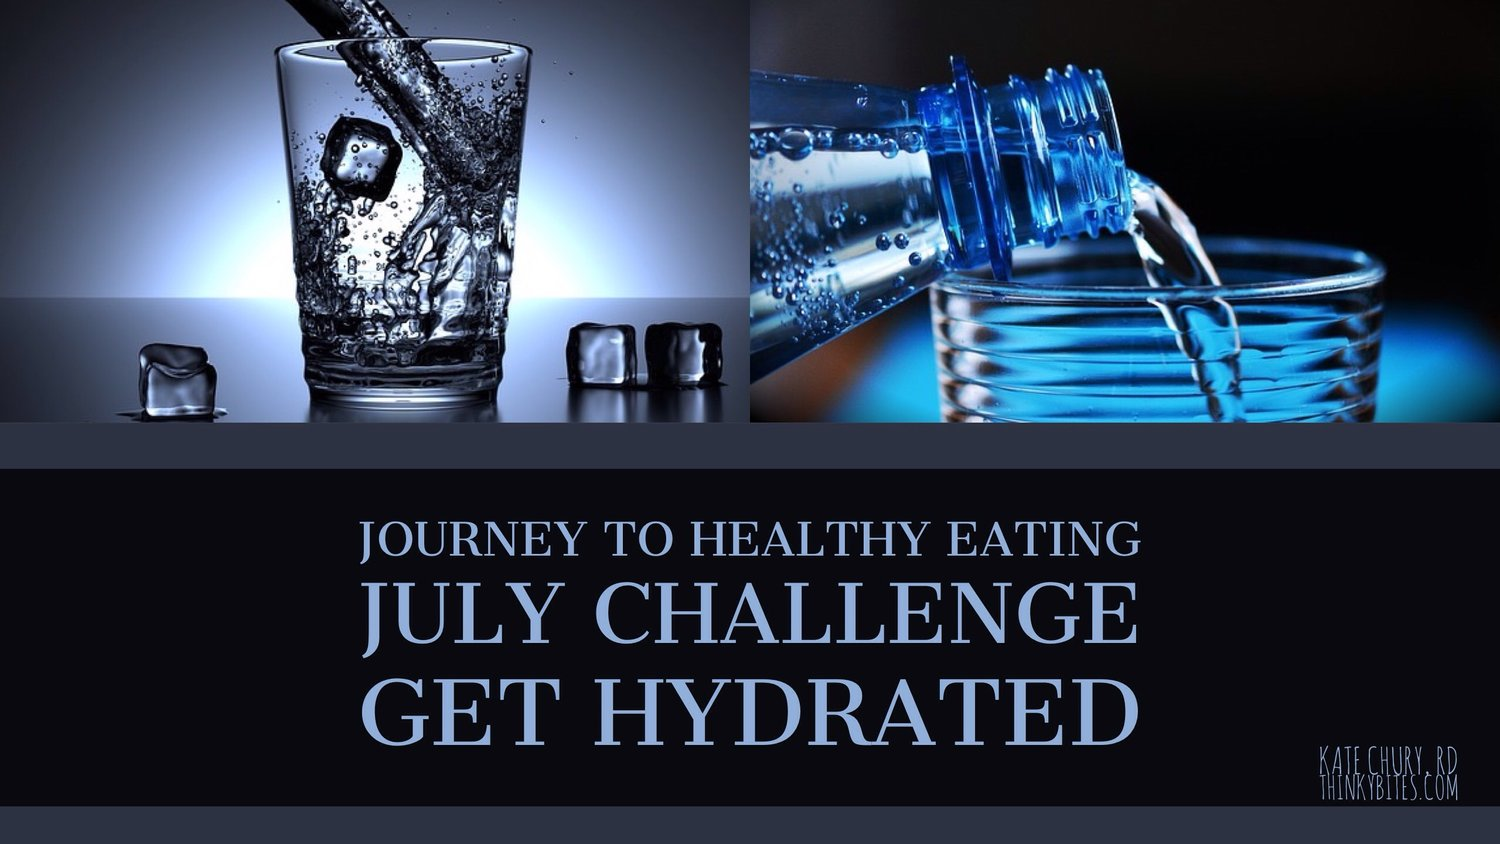 Journey To Healthy Eating 2017 - July Edition